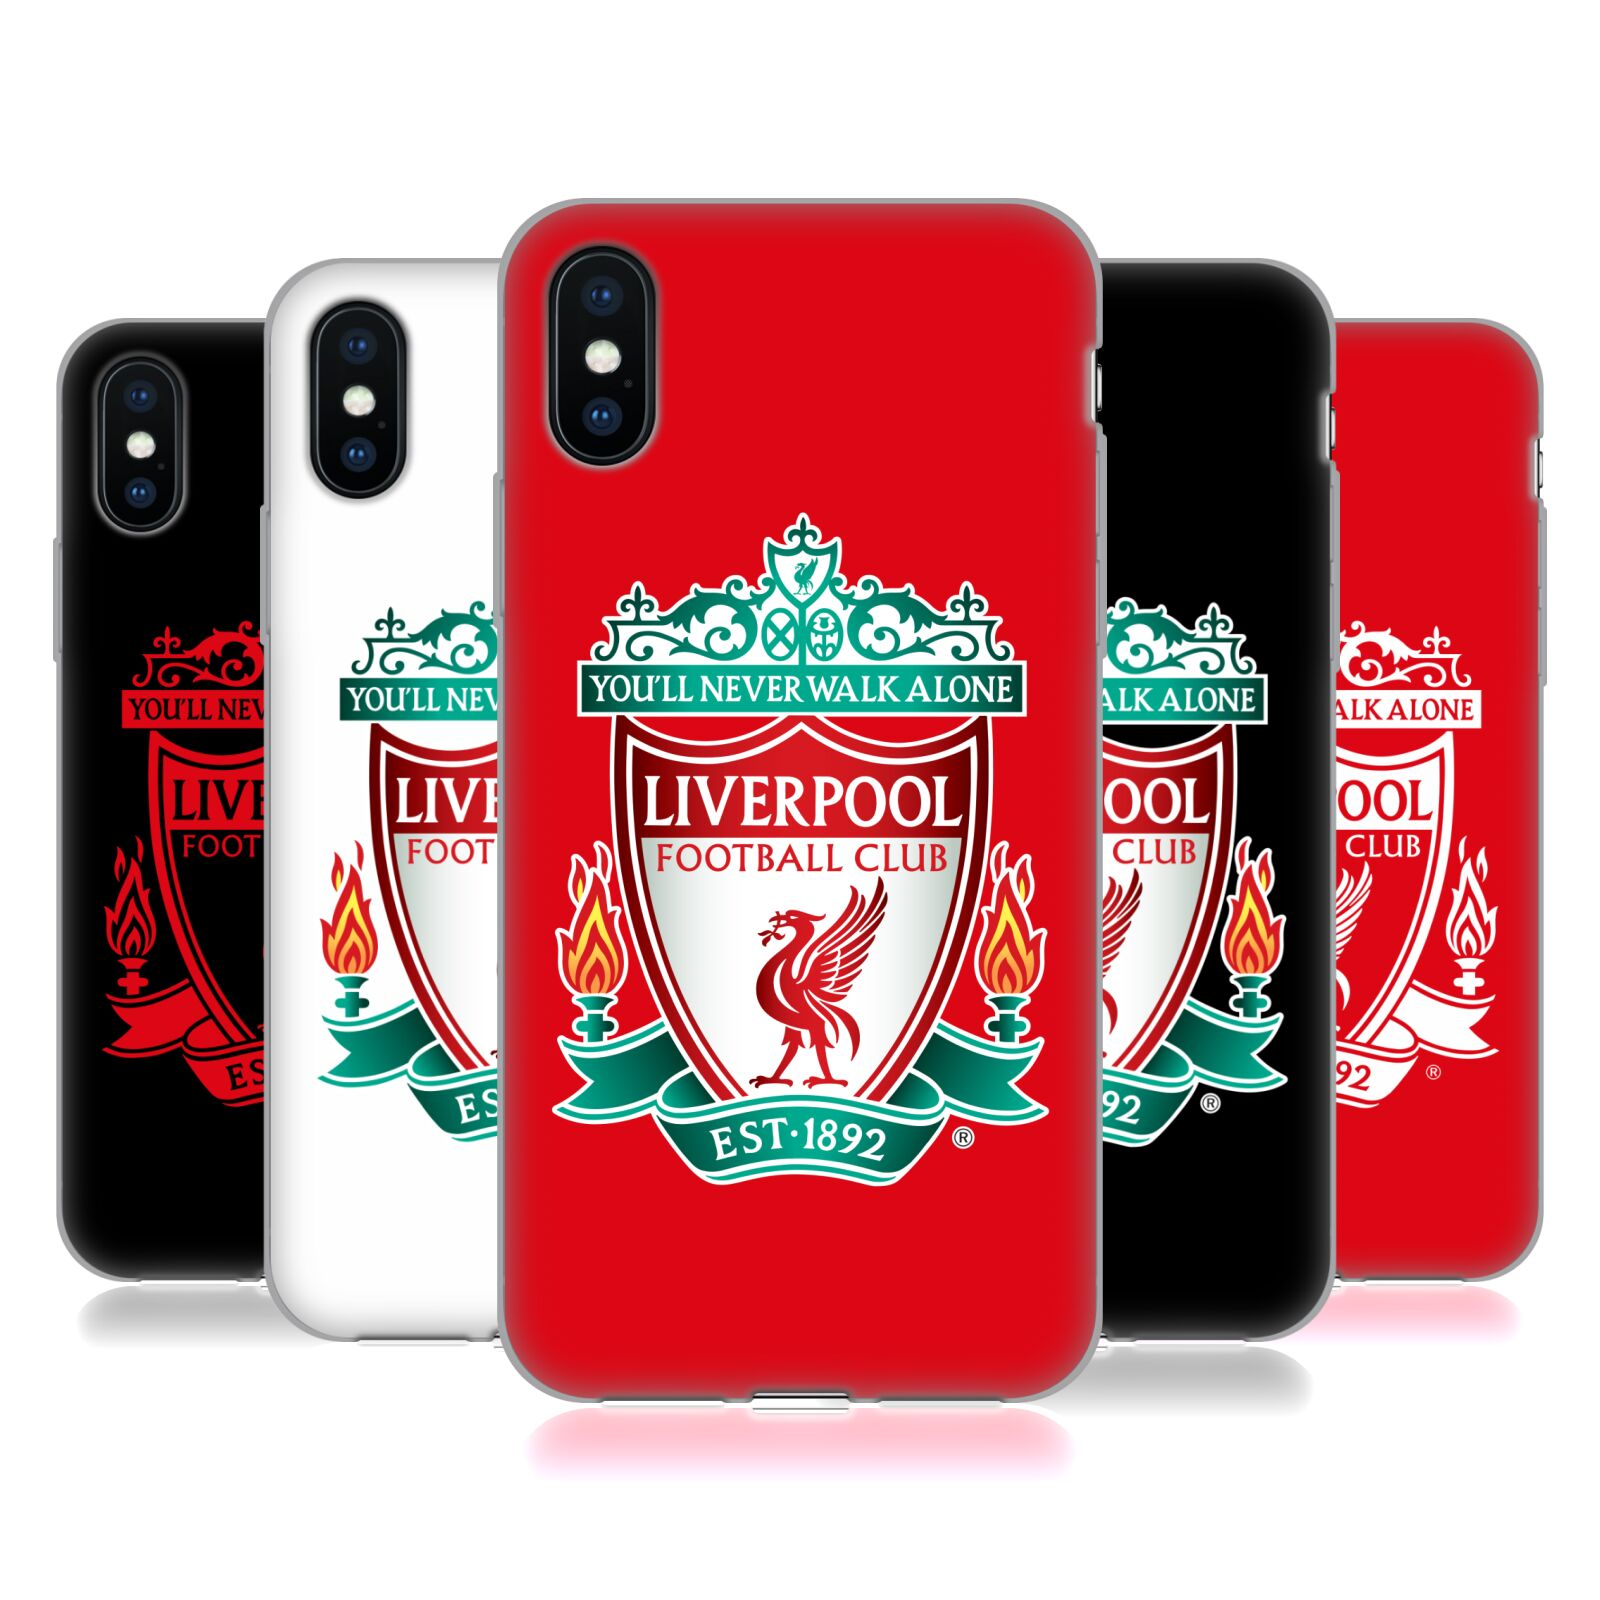 Liverpool Football Club <!--translate-lineup-->Crest 1<!--translate-lineup-->